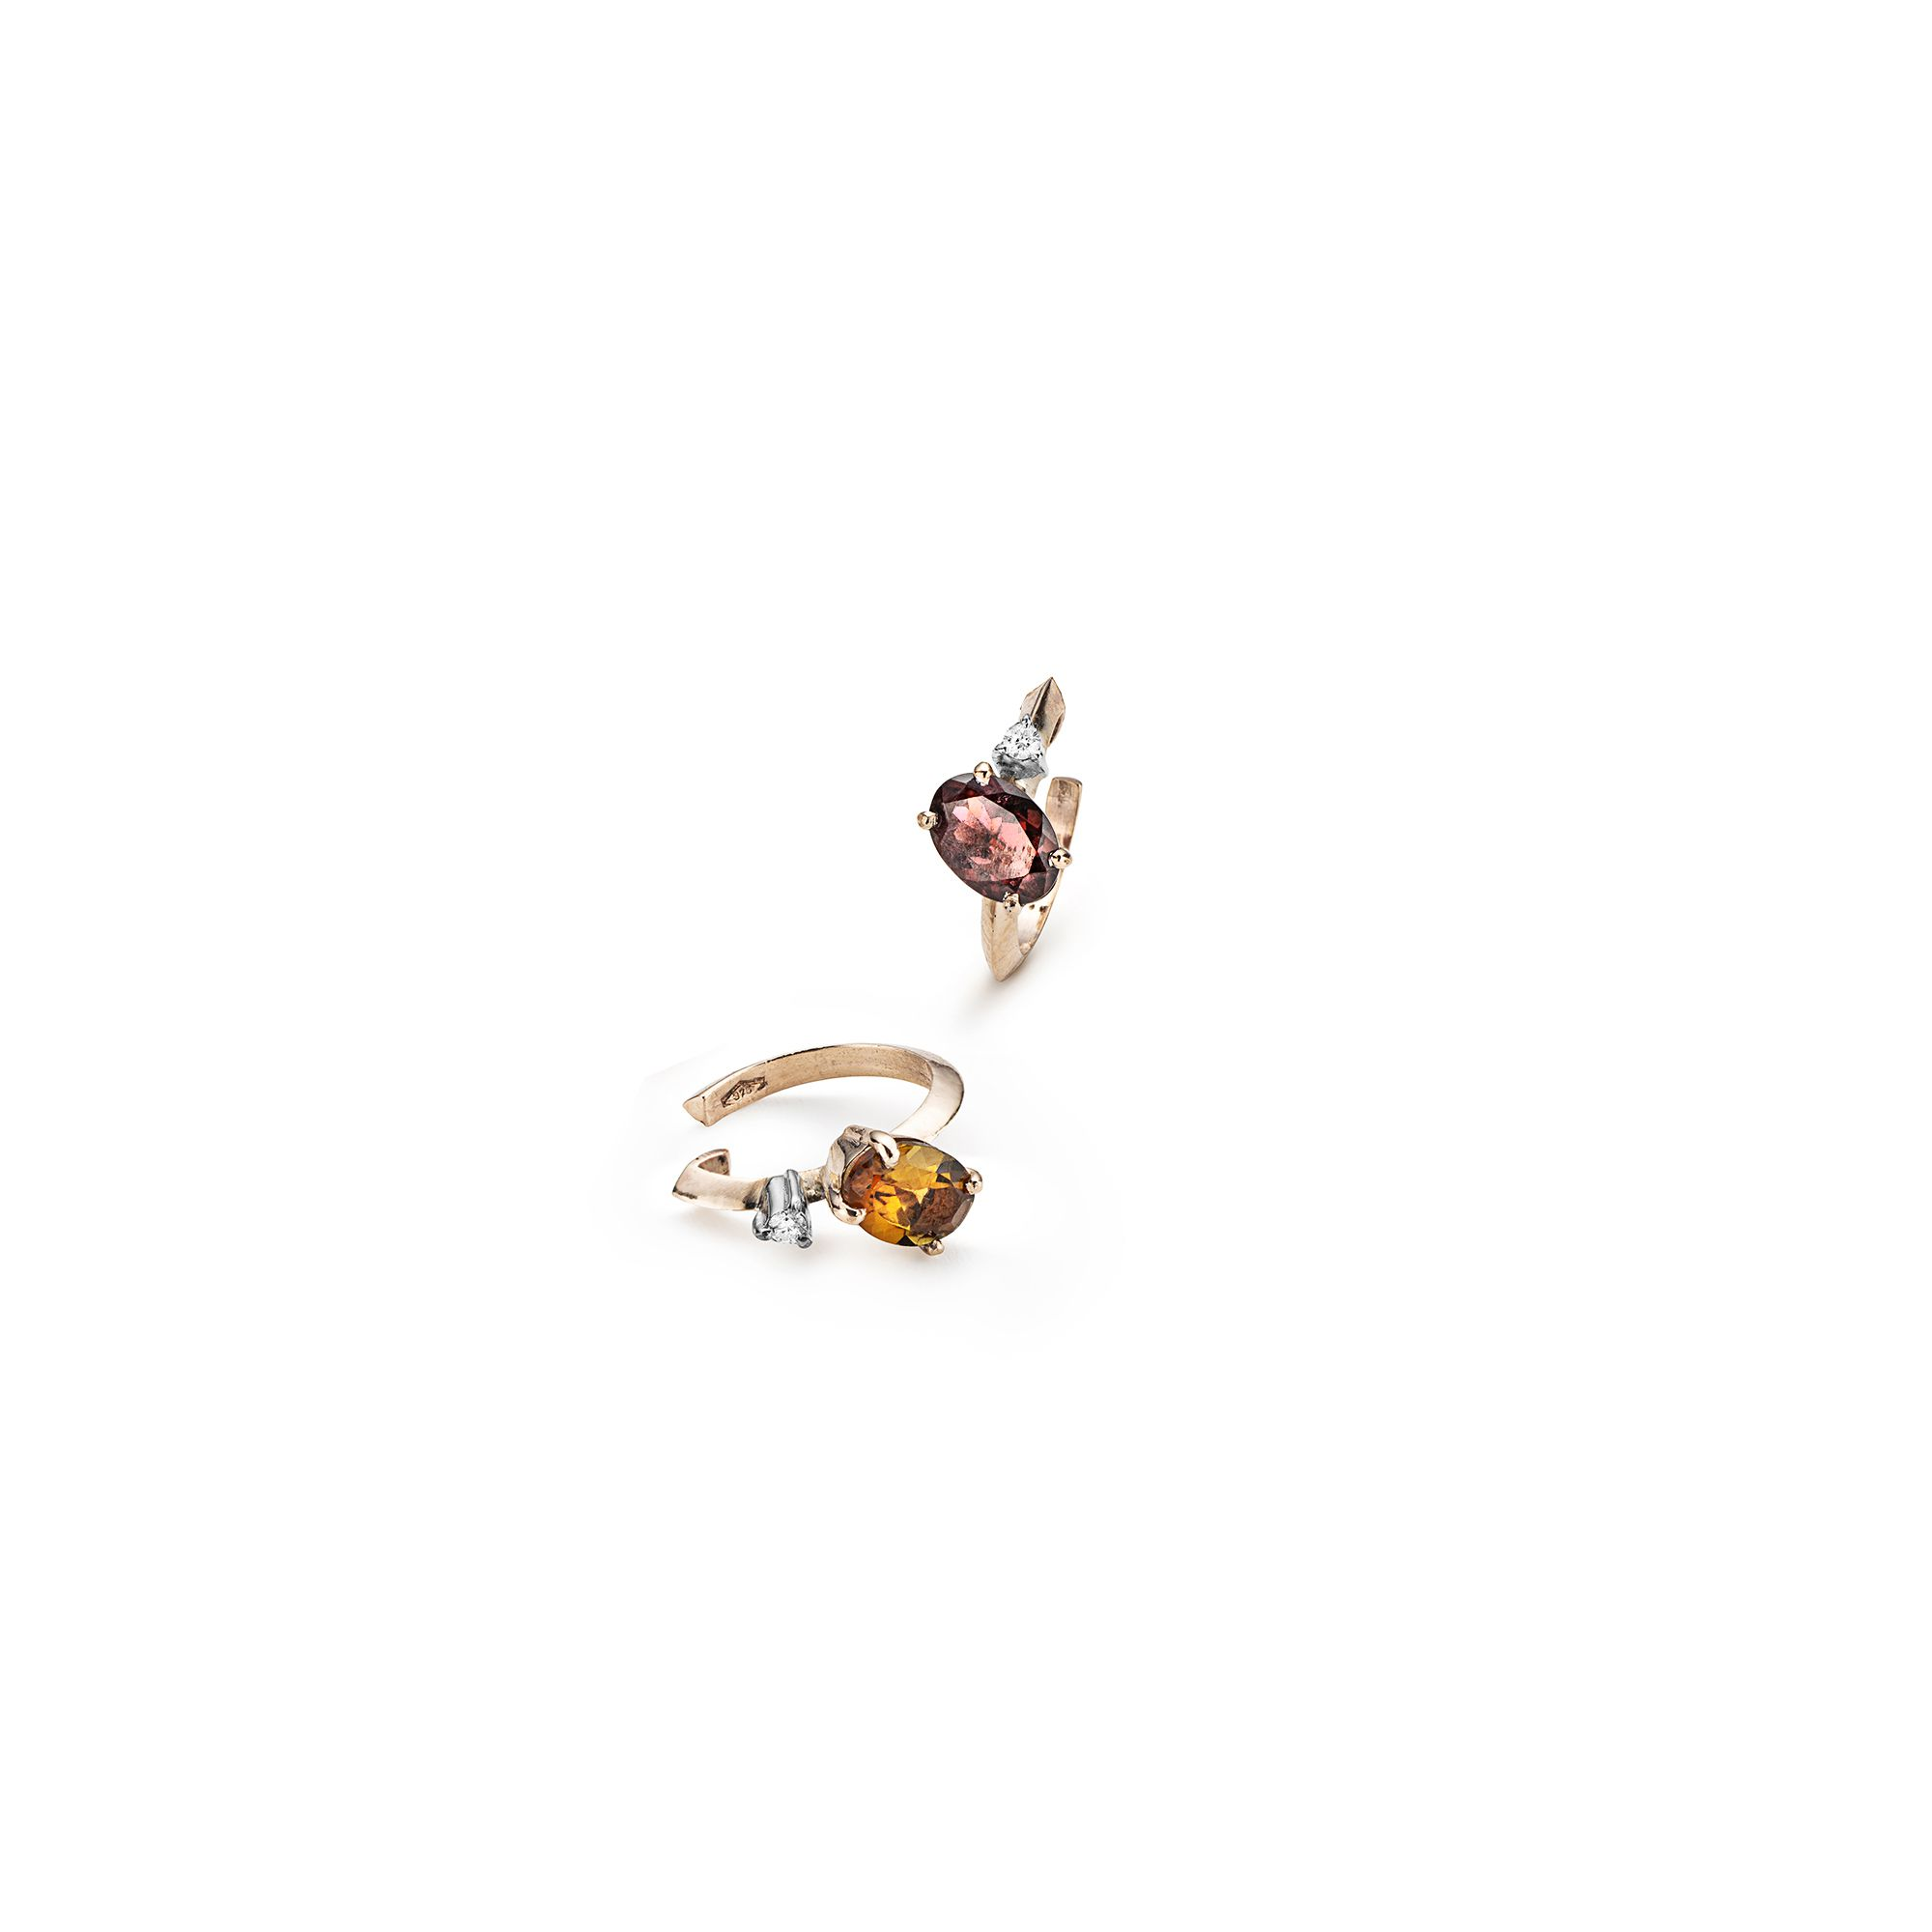 Tourmaline 'Balance' cuff earrings pair Set of two rose gold cartilage earrings with pink tourmaline and diamonds